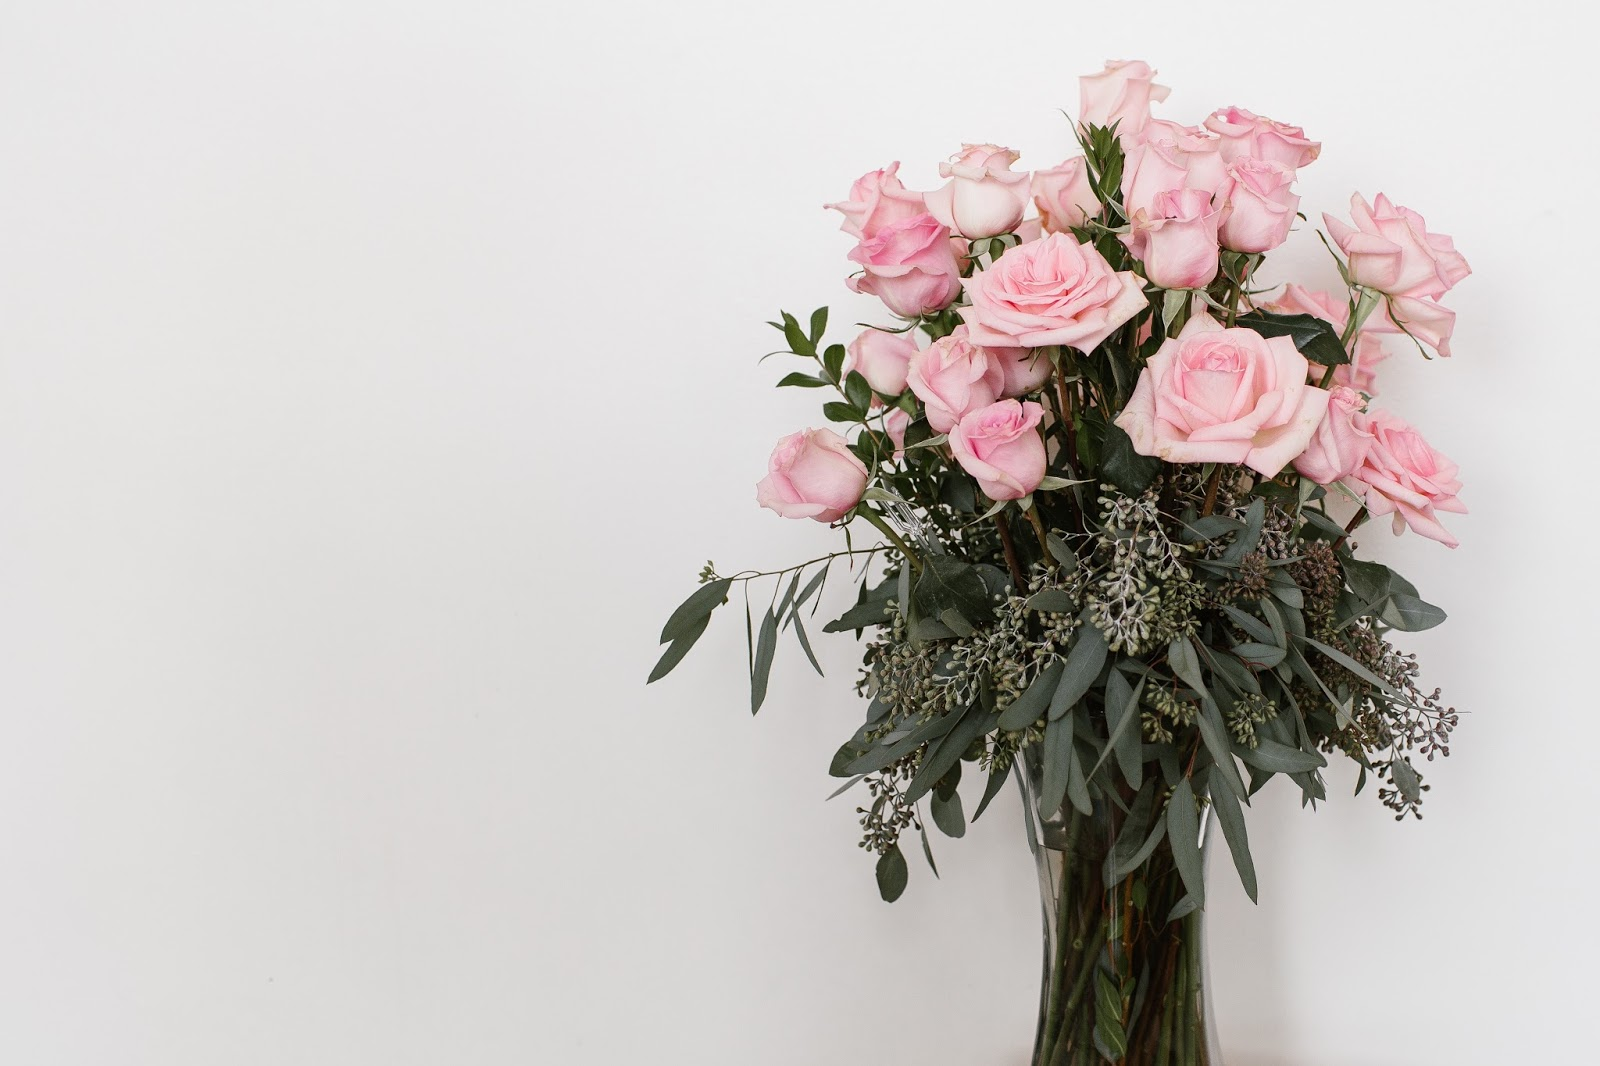 FTD Flowers, Roses, Pink Roses